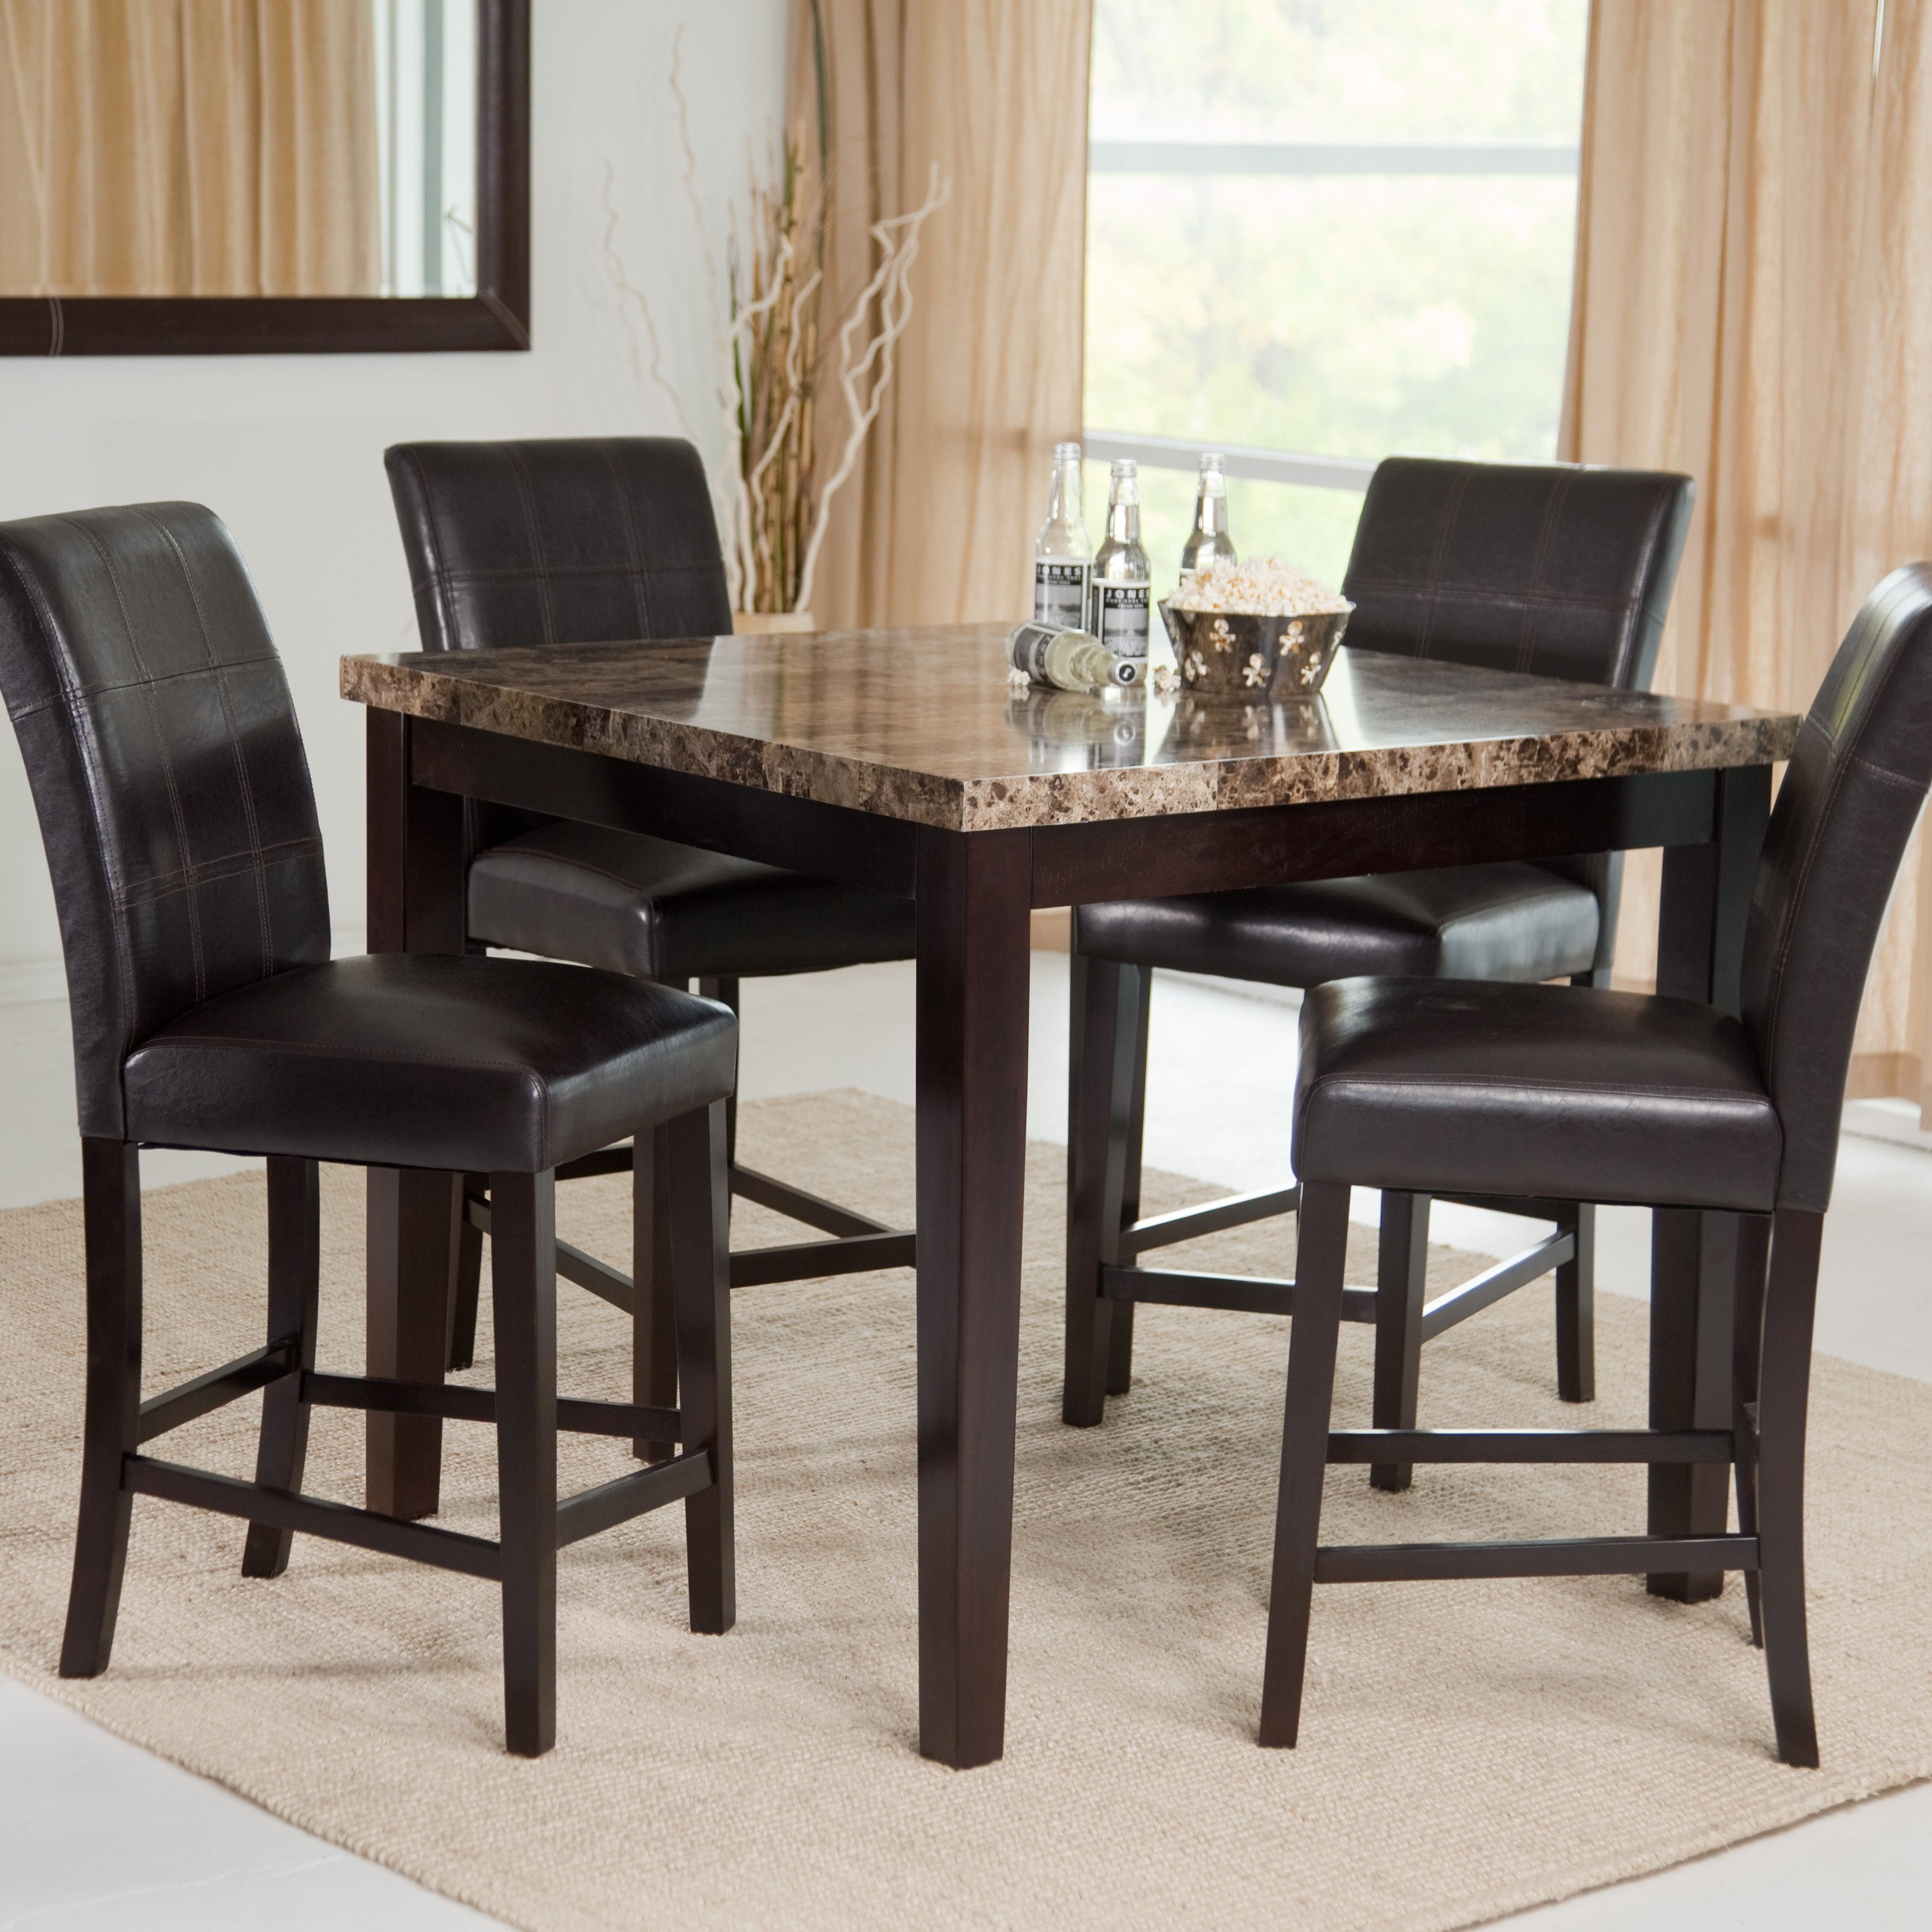 dining table set finley home palazzo 6 piece dining set with bench - dining table sets ZISTQPJ